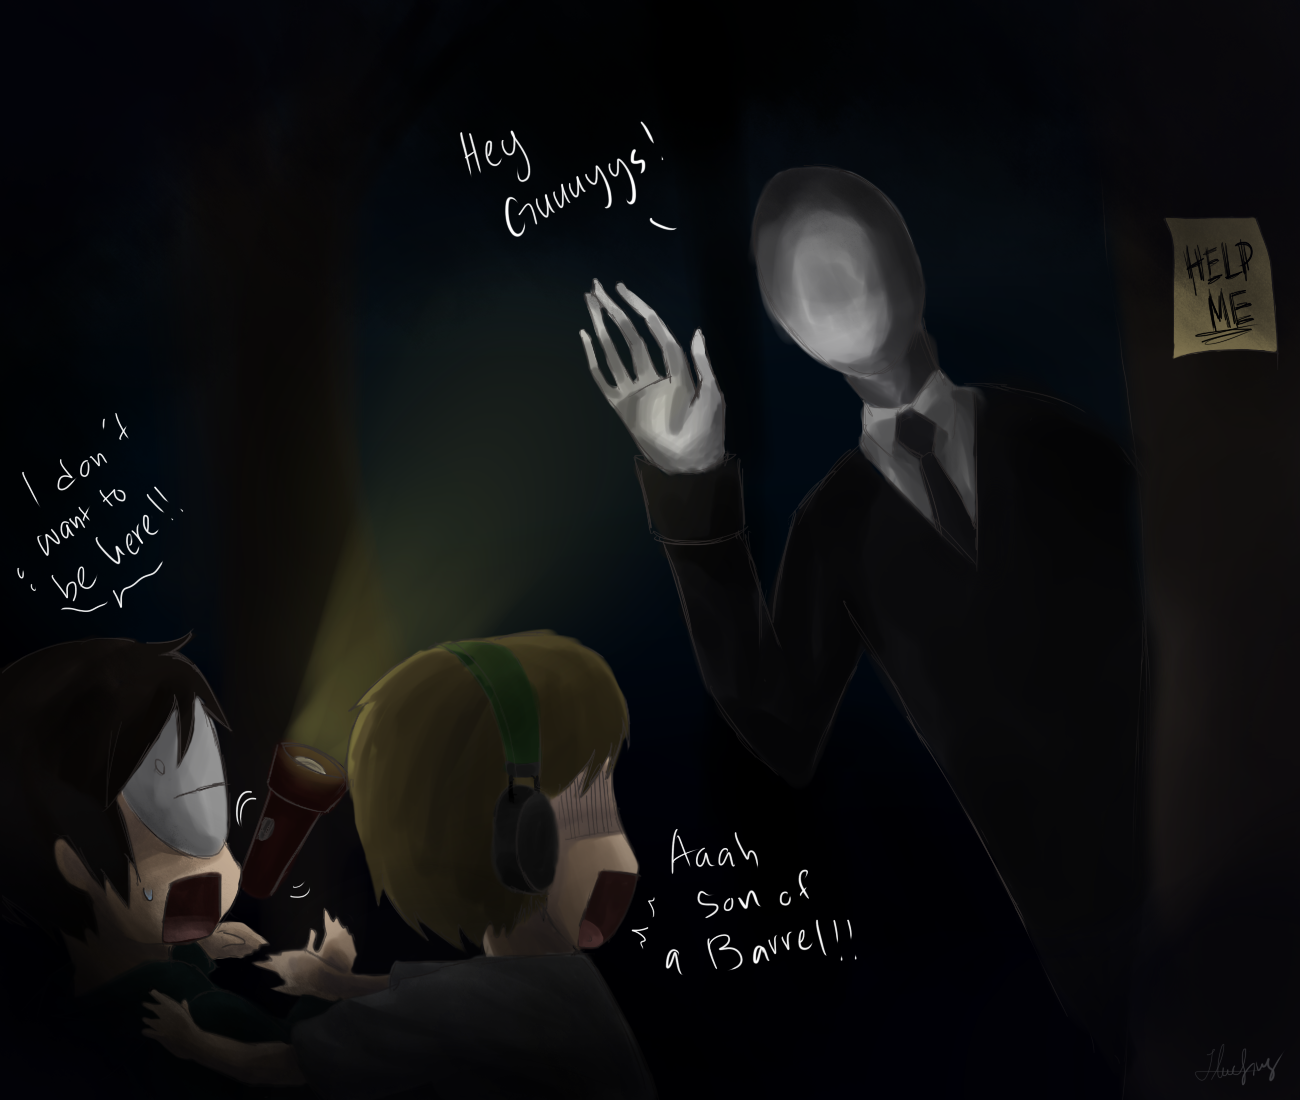 Pewds-and-Cry-play-Slender-the-slender-man-33823342-1300-1100.png